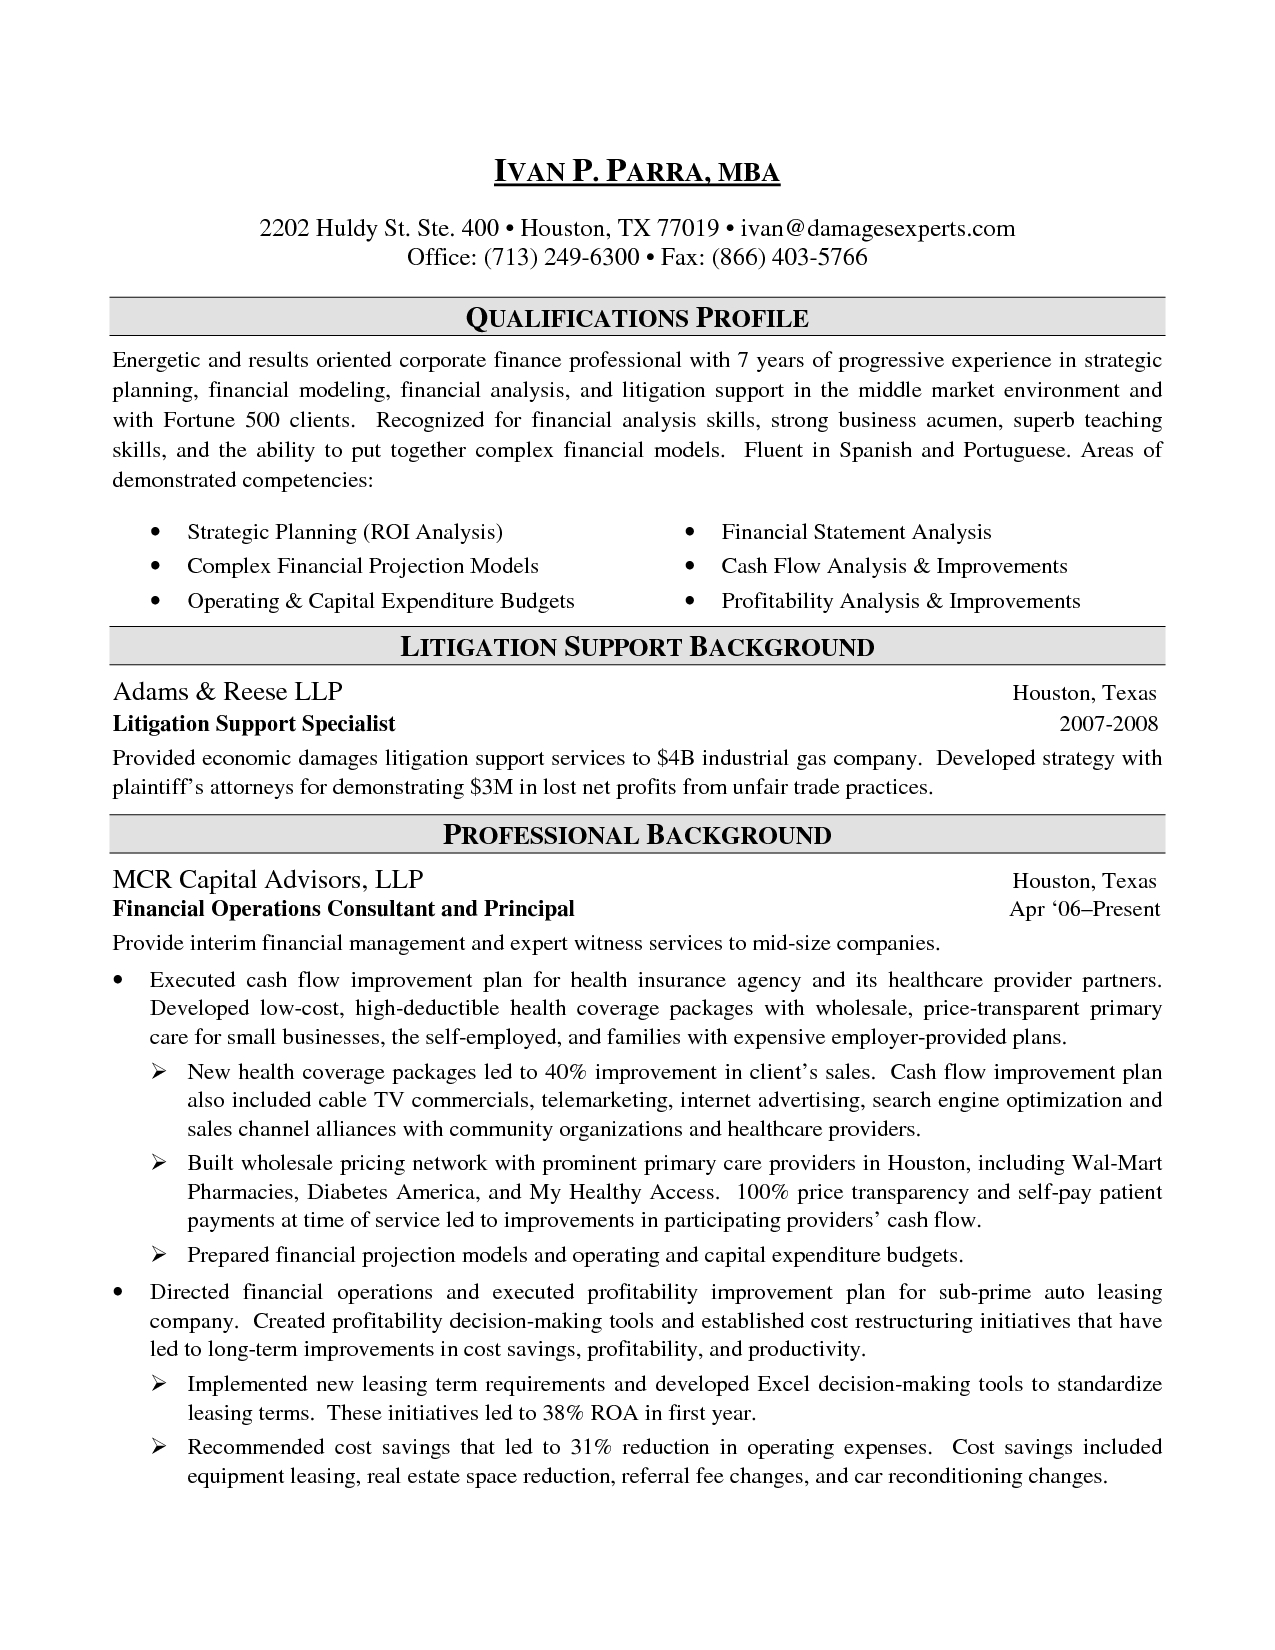 wall street oasis resume template example-Bank Resume Template Unique World Bank Resume Format Fresh World Bank Consultant Cv Template 13-q